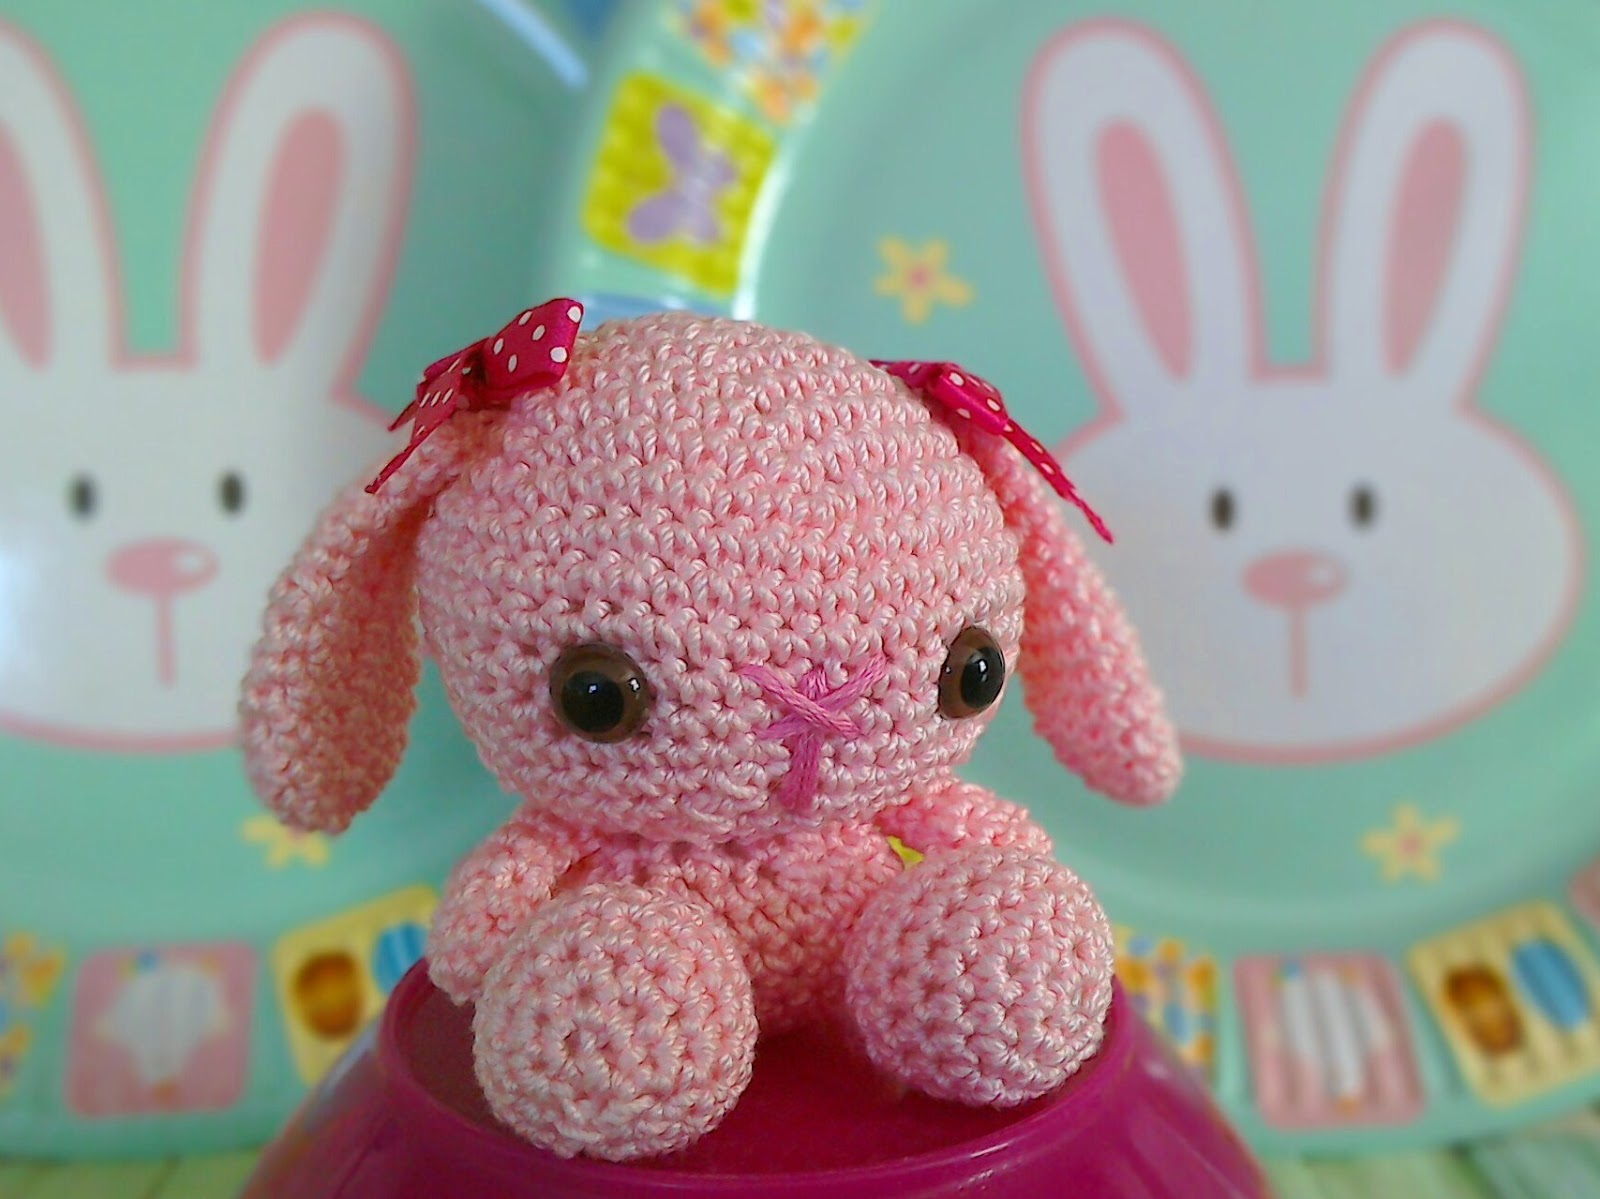 So I Might Just Have To Make This Little Ami Bunny A Mate